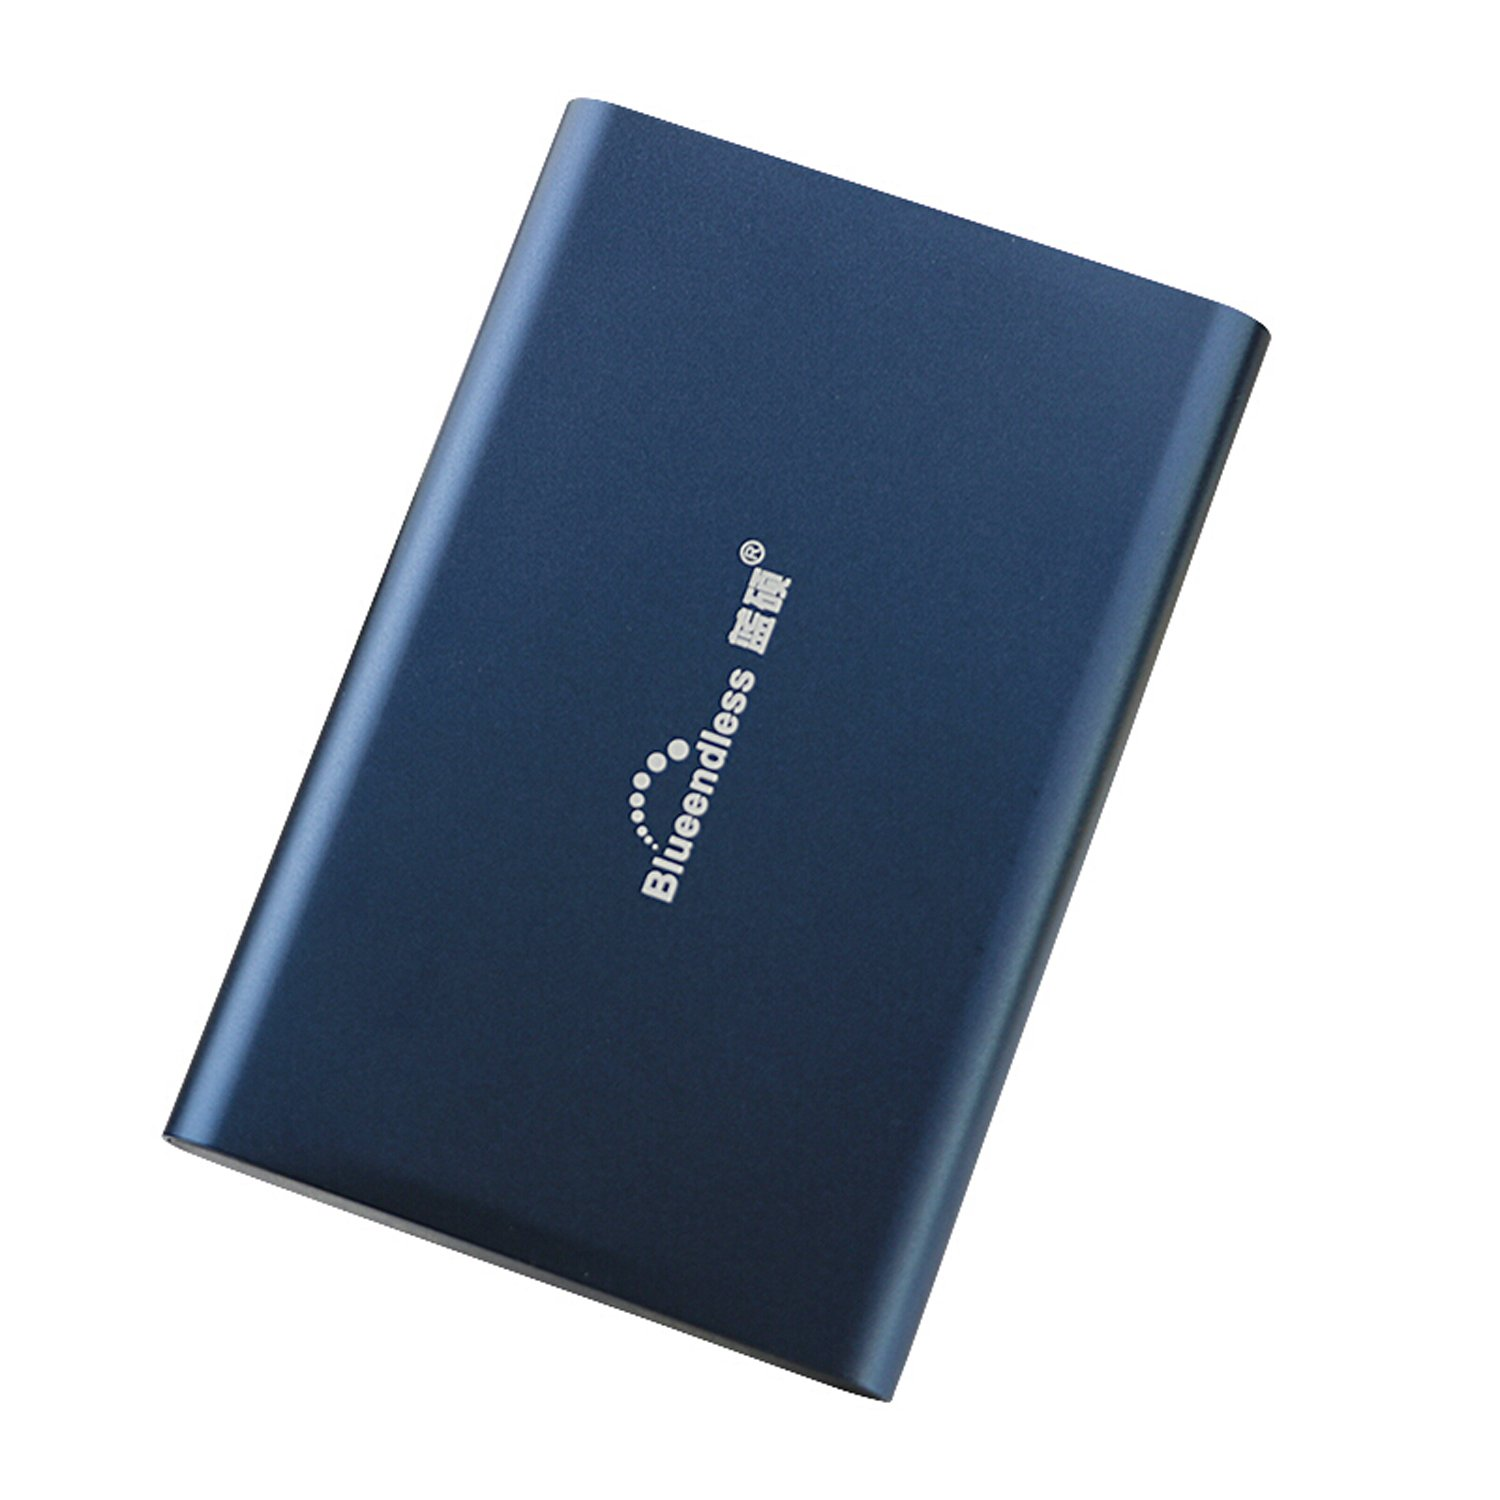 Bluenedless 160gb Portable External Hard Drive USB 3.0 Hard Disk for PC Laptop Computer (Blue)